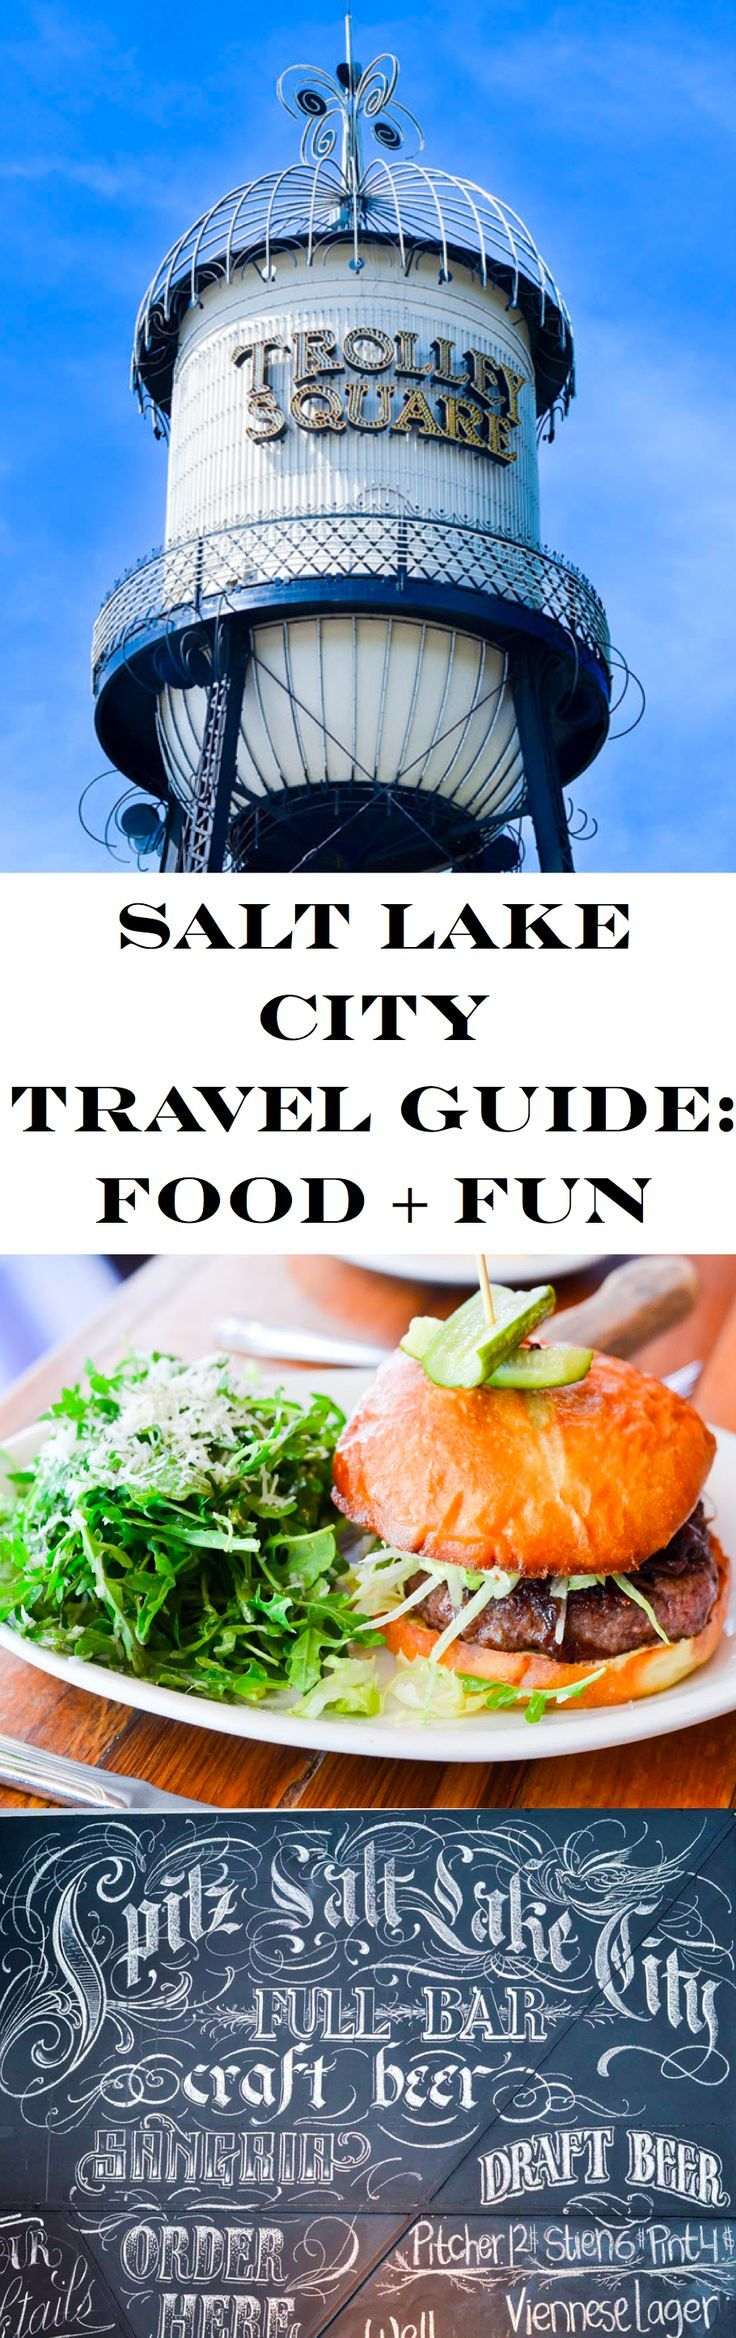 17 Best Ideas About Salt Lake City On Pinterest Slc